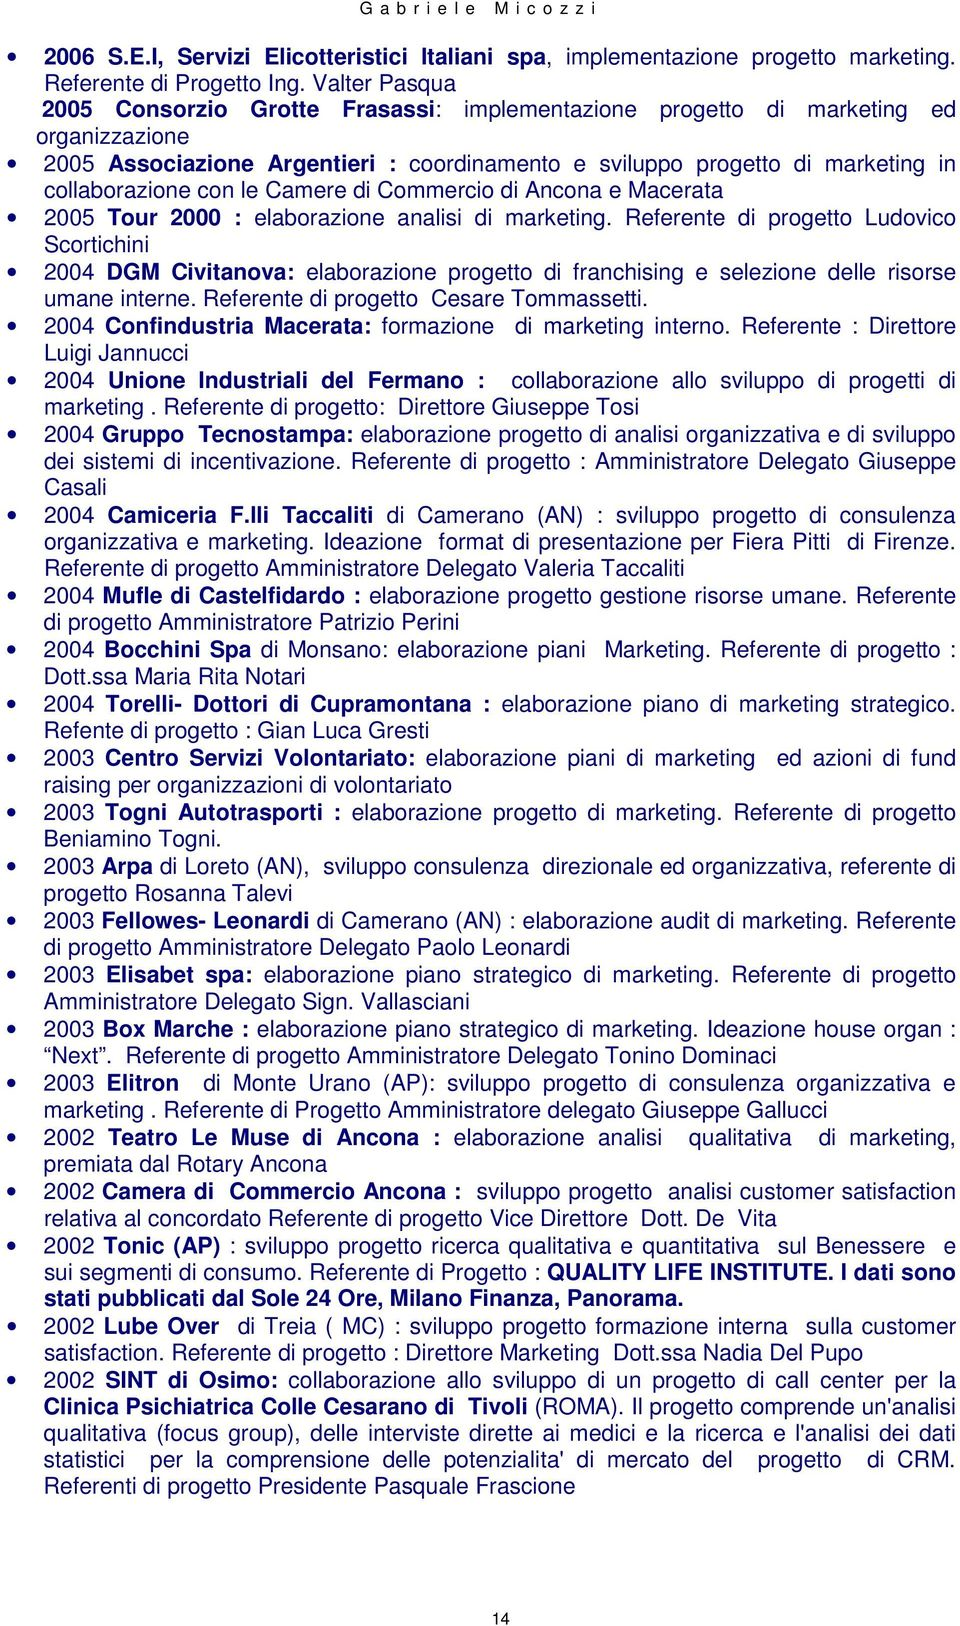 con le Camere di Commercio di Ancona e Macerata 2005 Tour 2000 : elaborazione analisi di marketing.